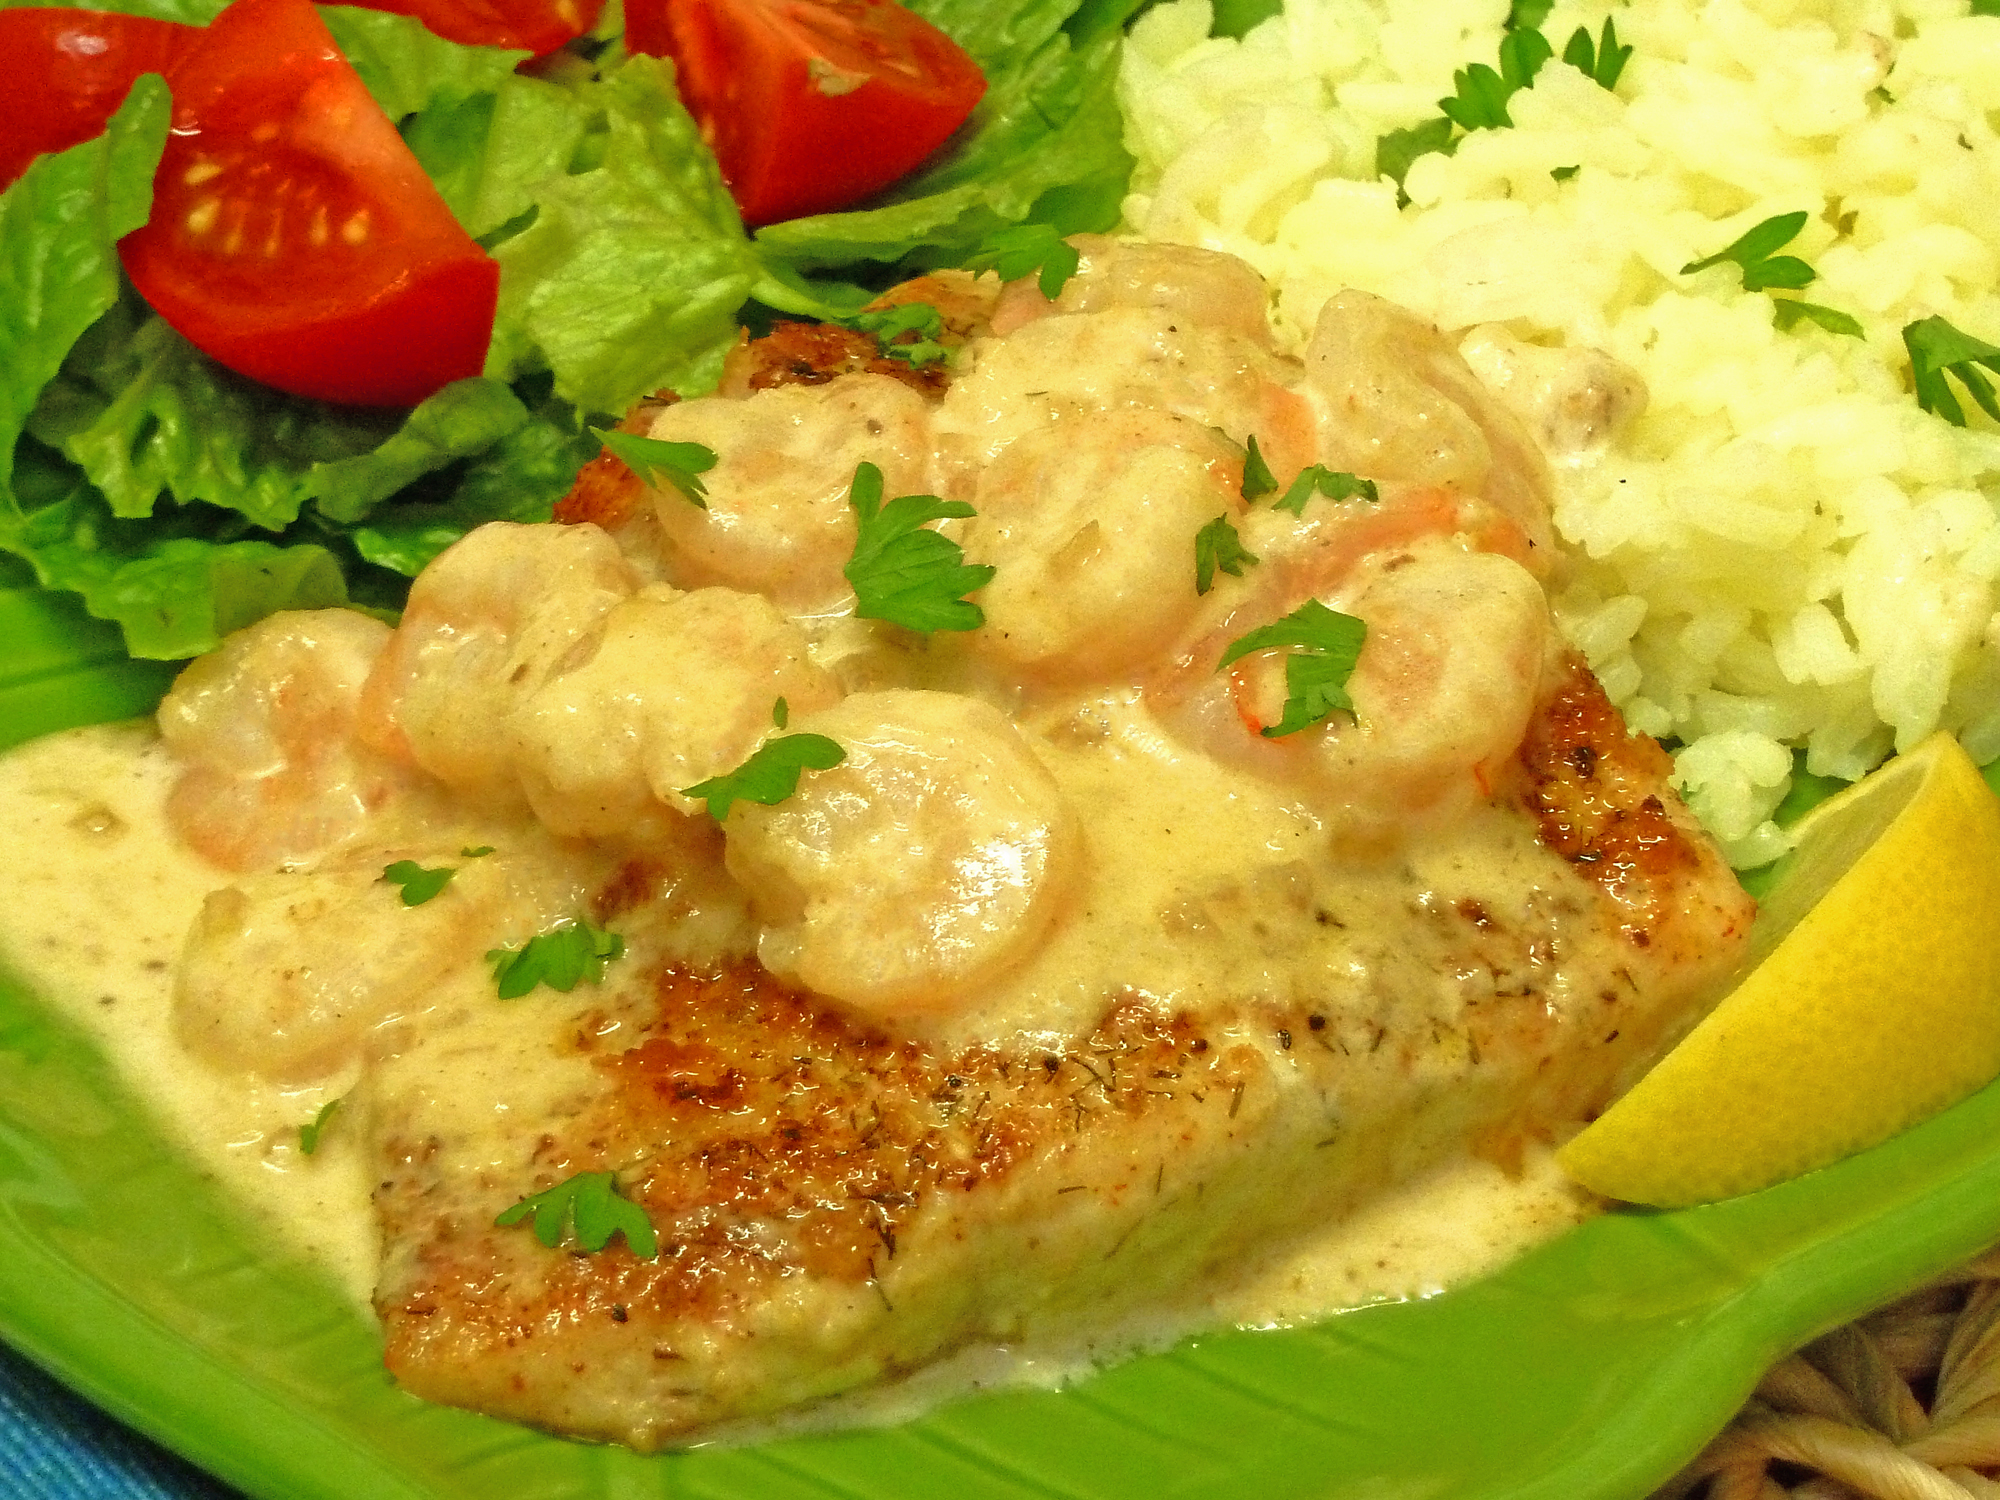 Delicious shrimp scampi sauce tops red snapper.